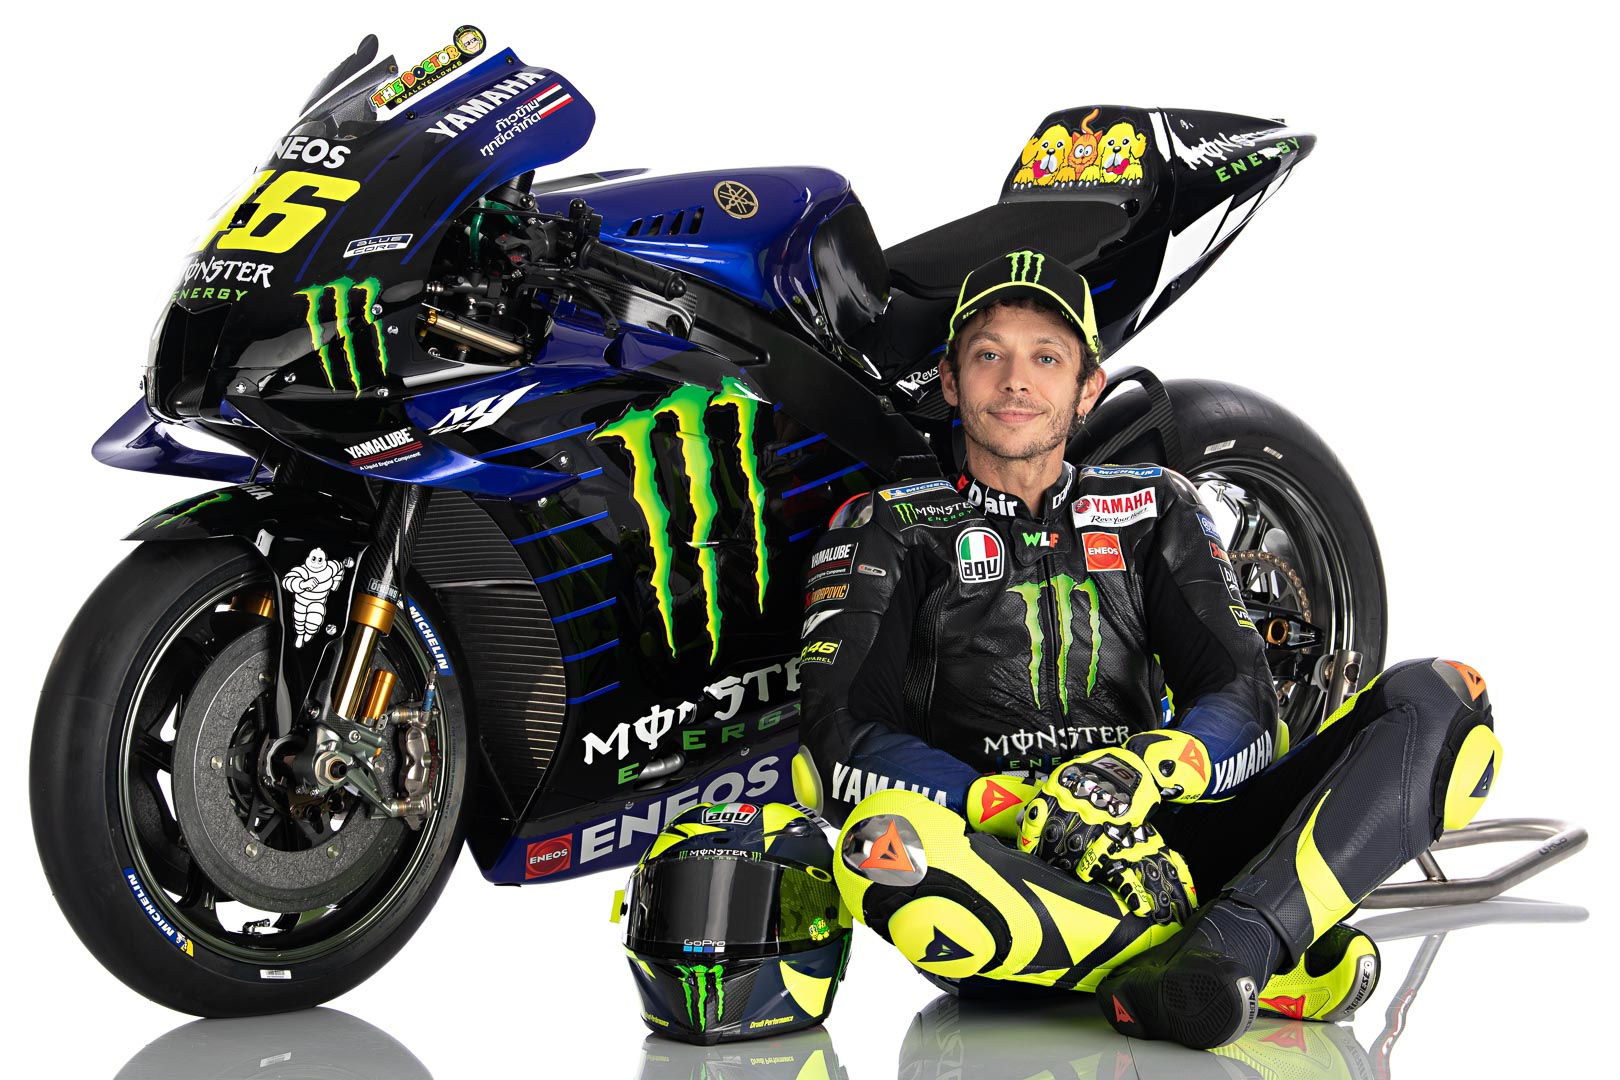 Valentino Rossi 2020 Motogp Yamaha Livery First Look 18 Photos